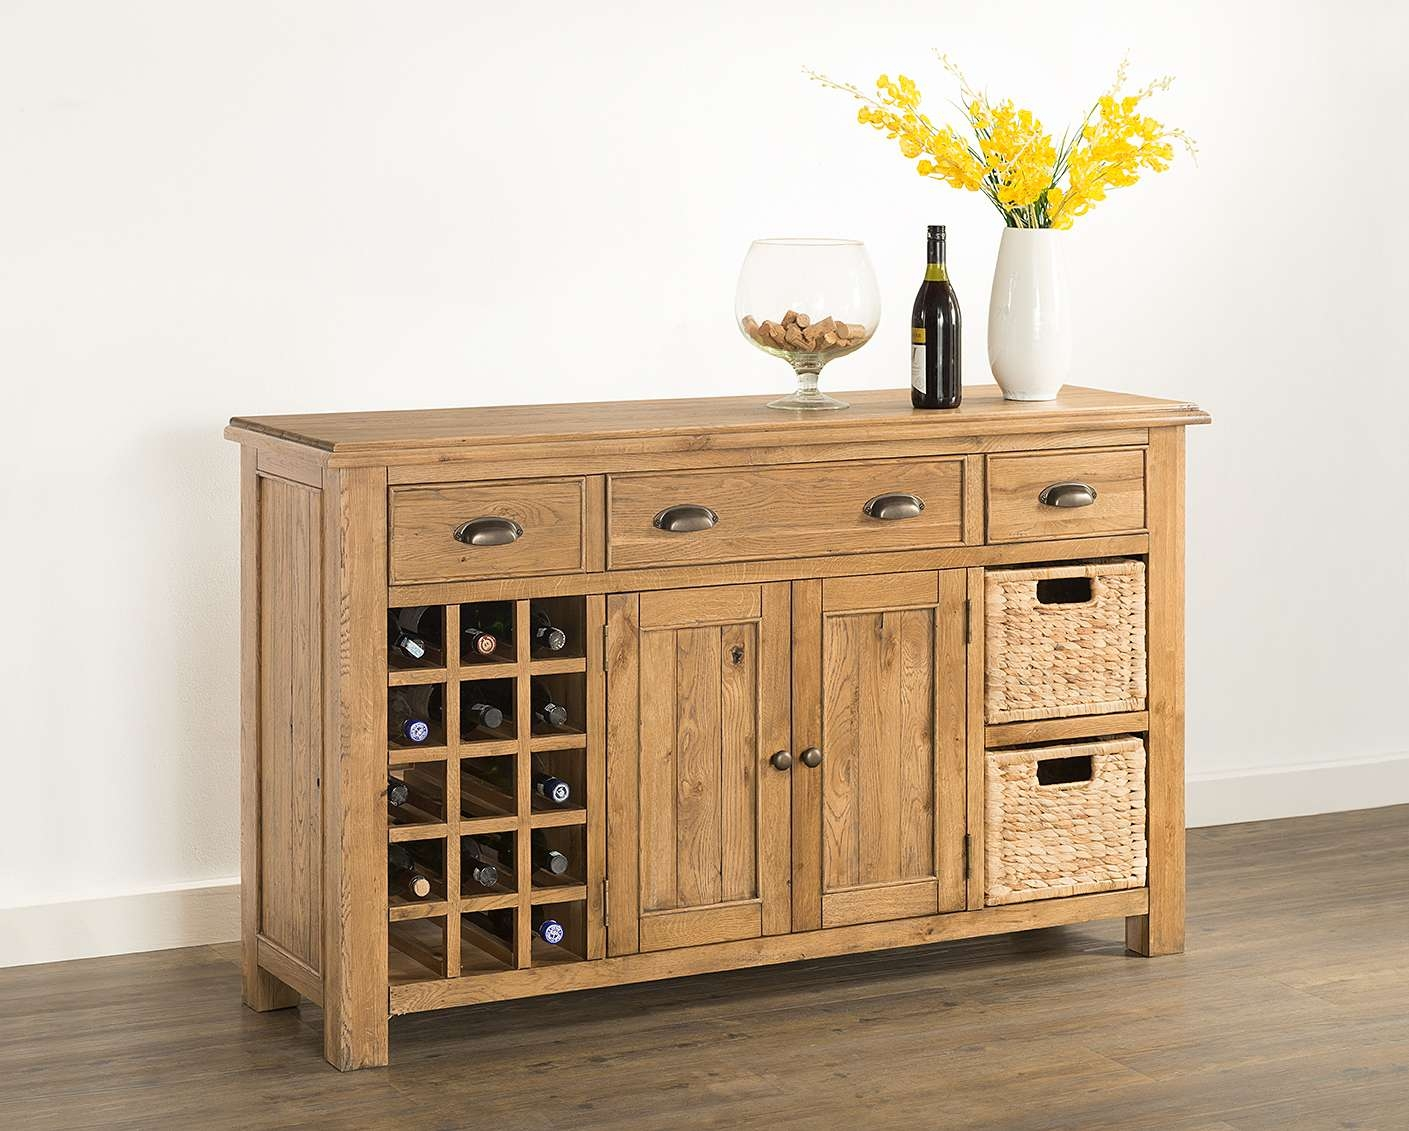 Hartford Large Sideboard With Wine Rack & Baskets (60 15) – Papaya Intended For Sideboards With Wine Rack (View 6 of 20)